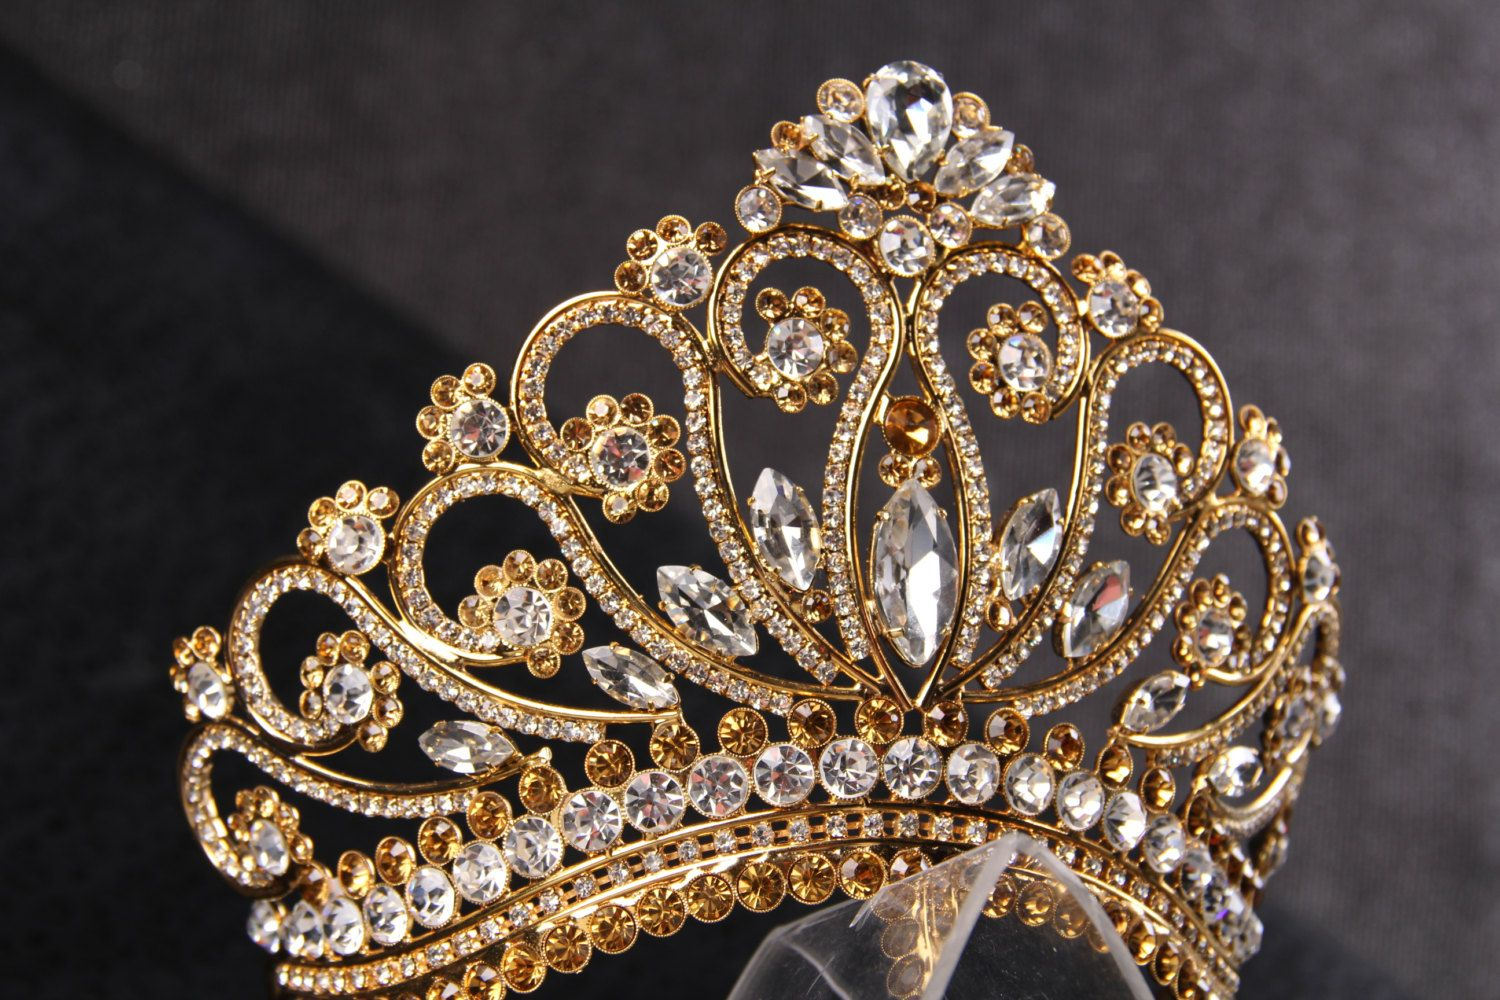 princess tiara crown tiaras for wedding crystal gold by ...